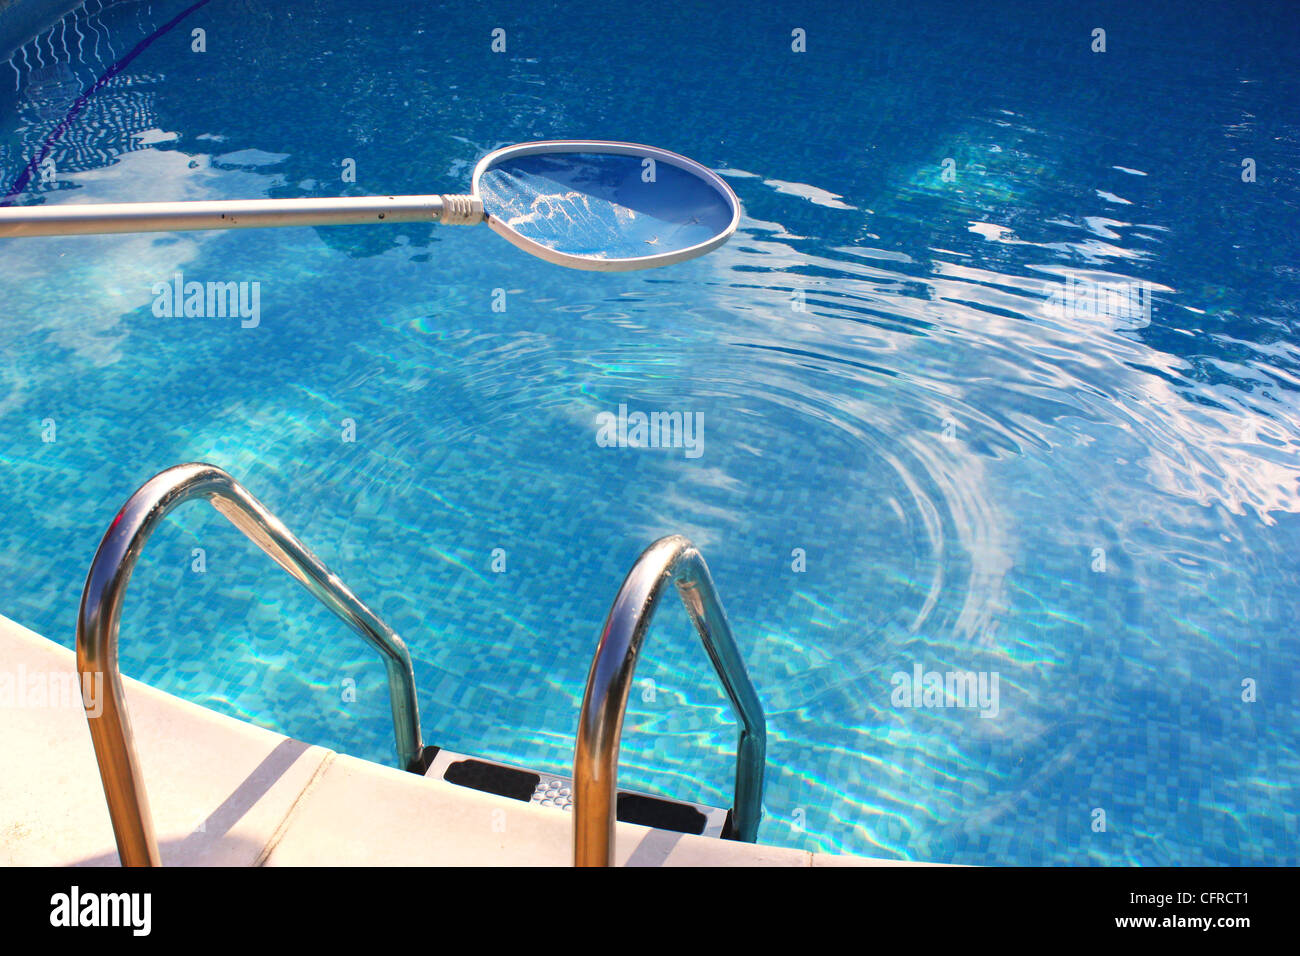 Cleaning swimming pool water with a net Stock Photo ...